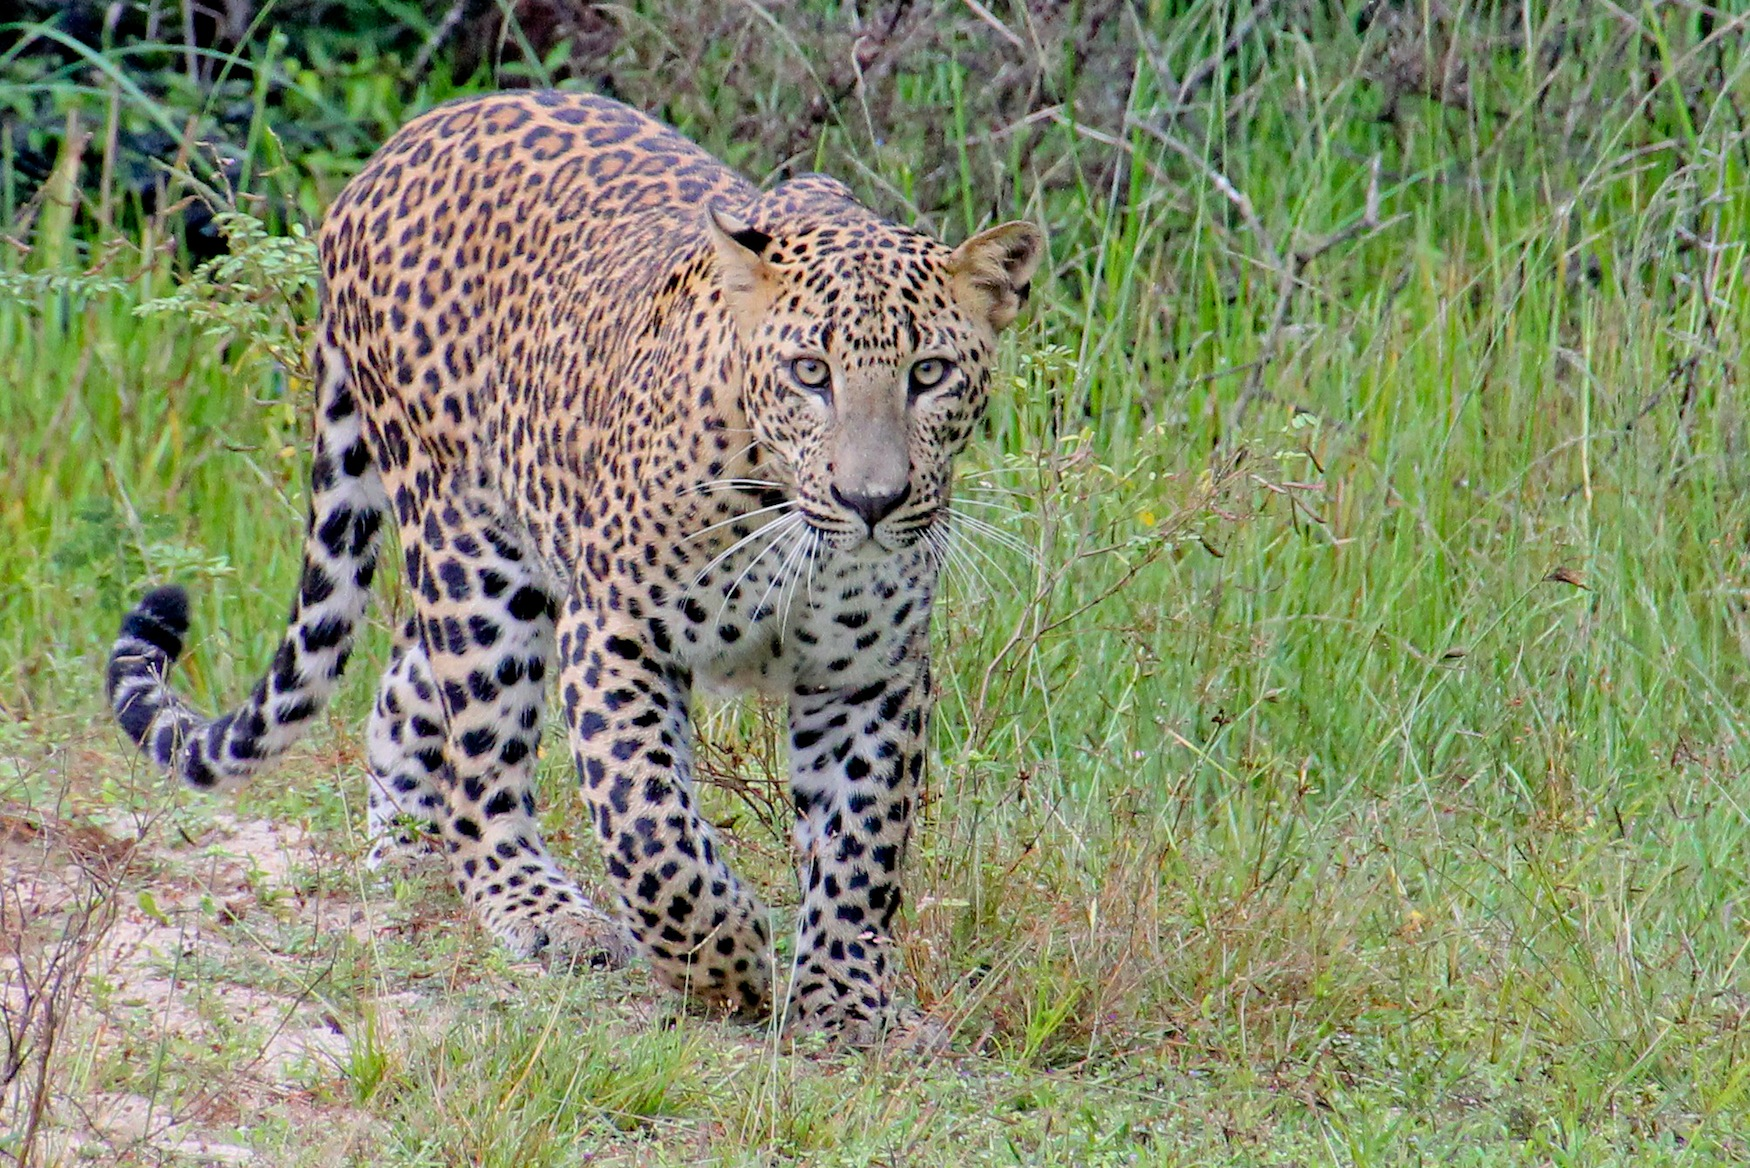 Sri Lankan Leopard, Yala National Park